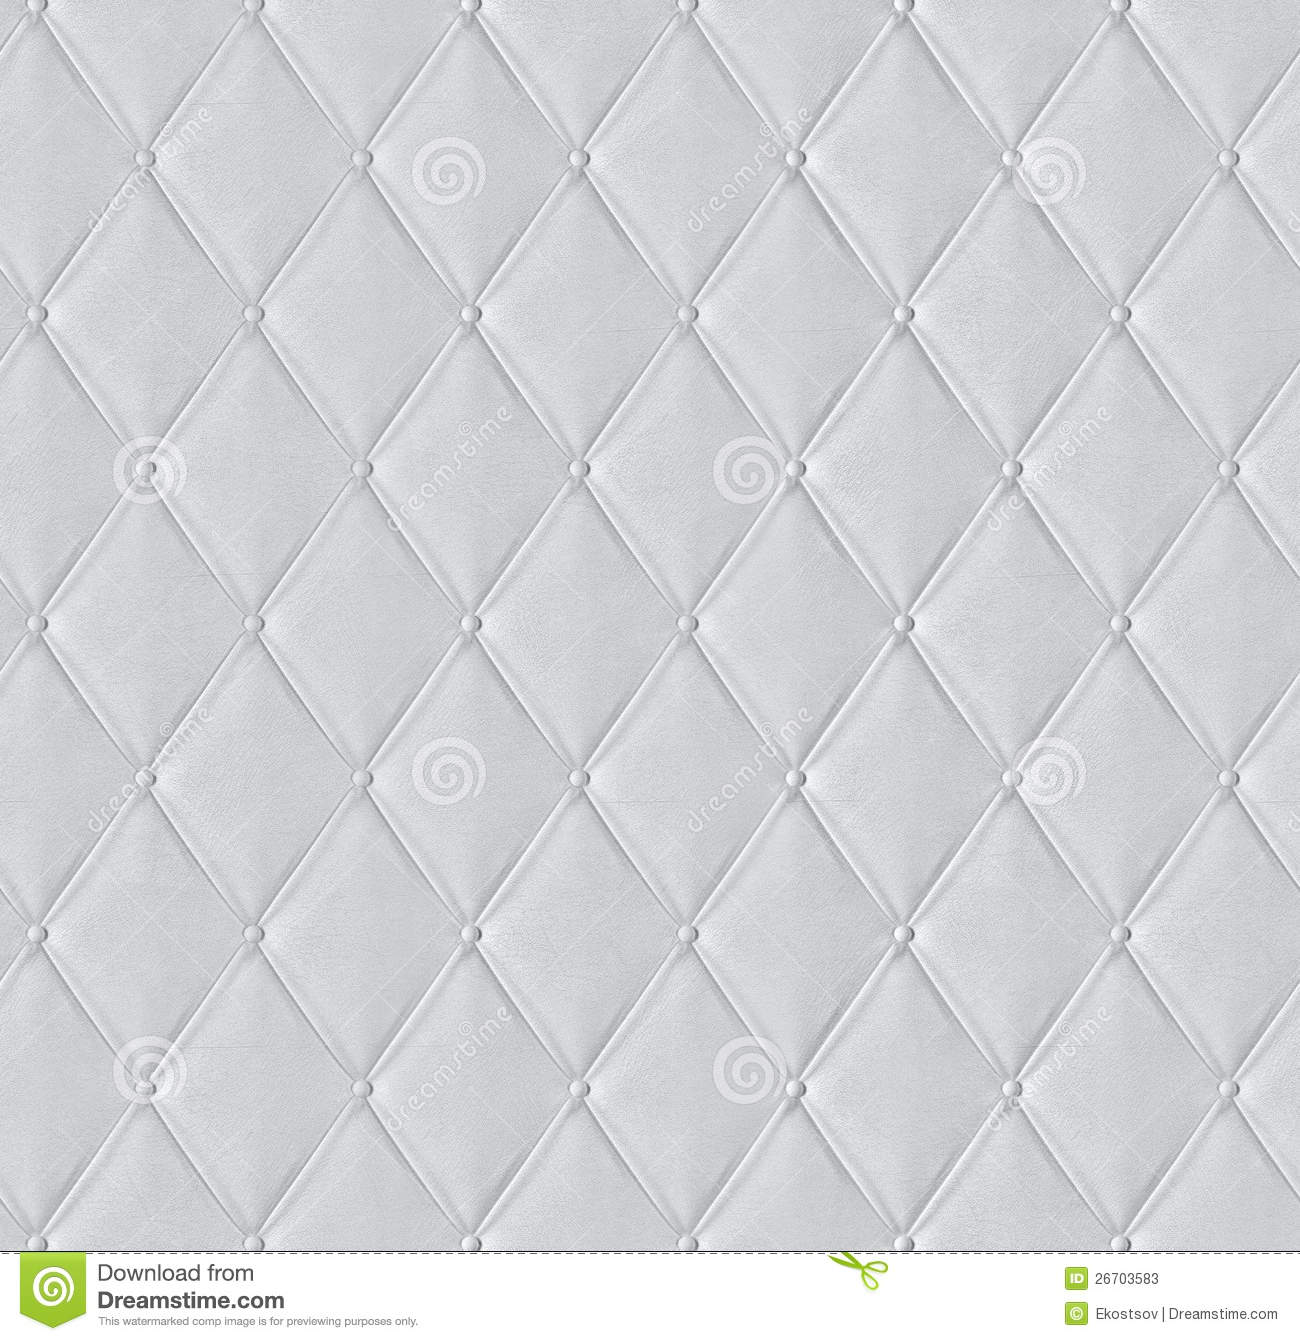 White Quilted Leather Tiled Texture Stock Photo 26703583 - Megapixl : leather quilting - Adamdwight.com